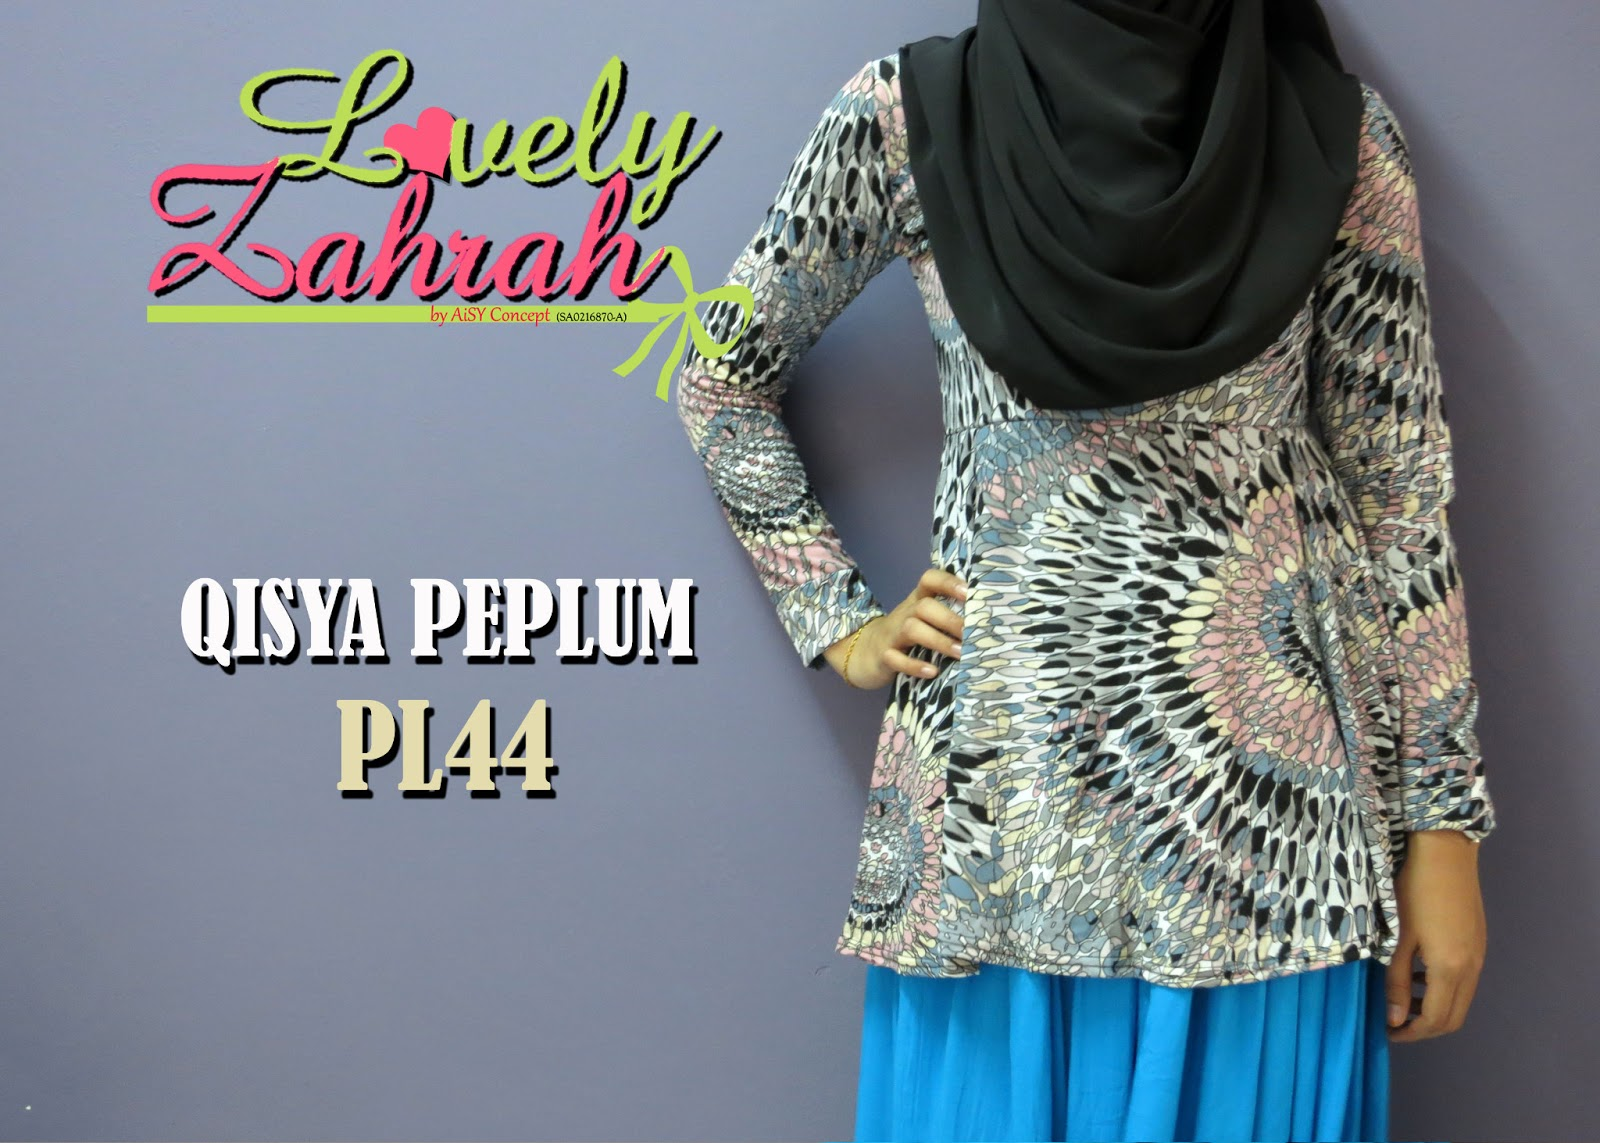 PRICE : RM39 (NOT INCLUDING POSTAGE)